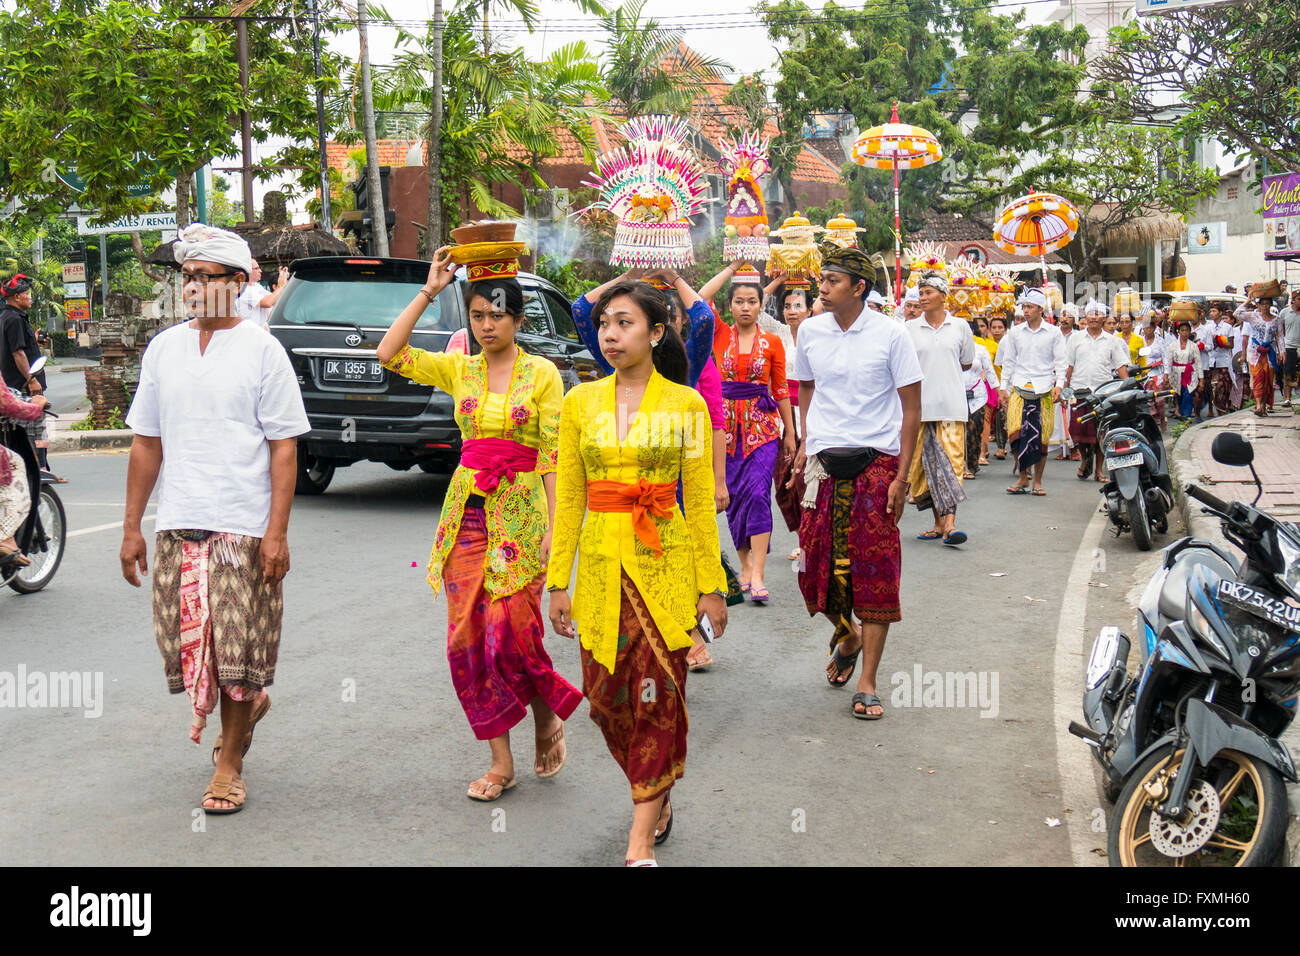 Traditional Balinese Ceremonies, Ubud, Bali, Indonesia - Stock Image